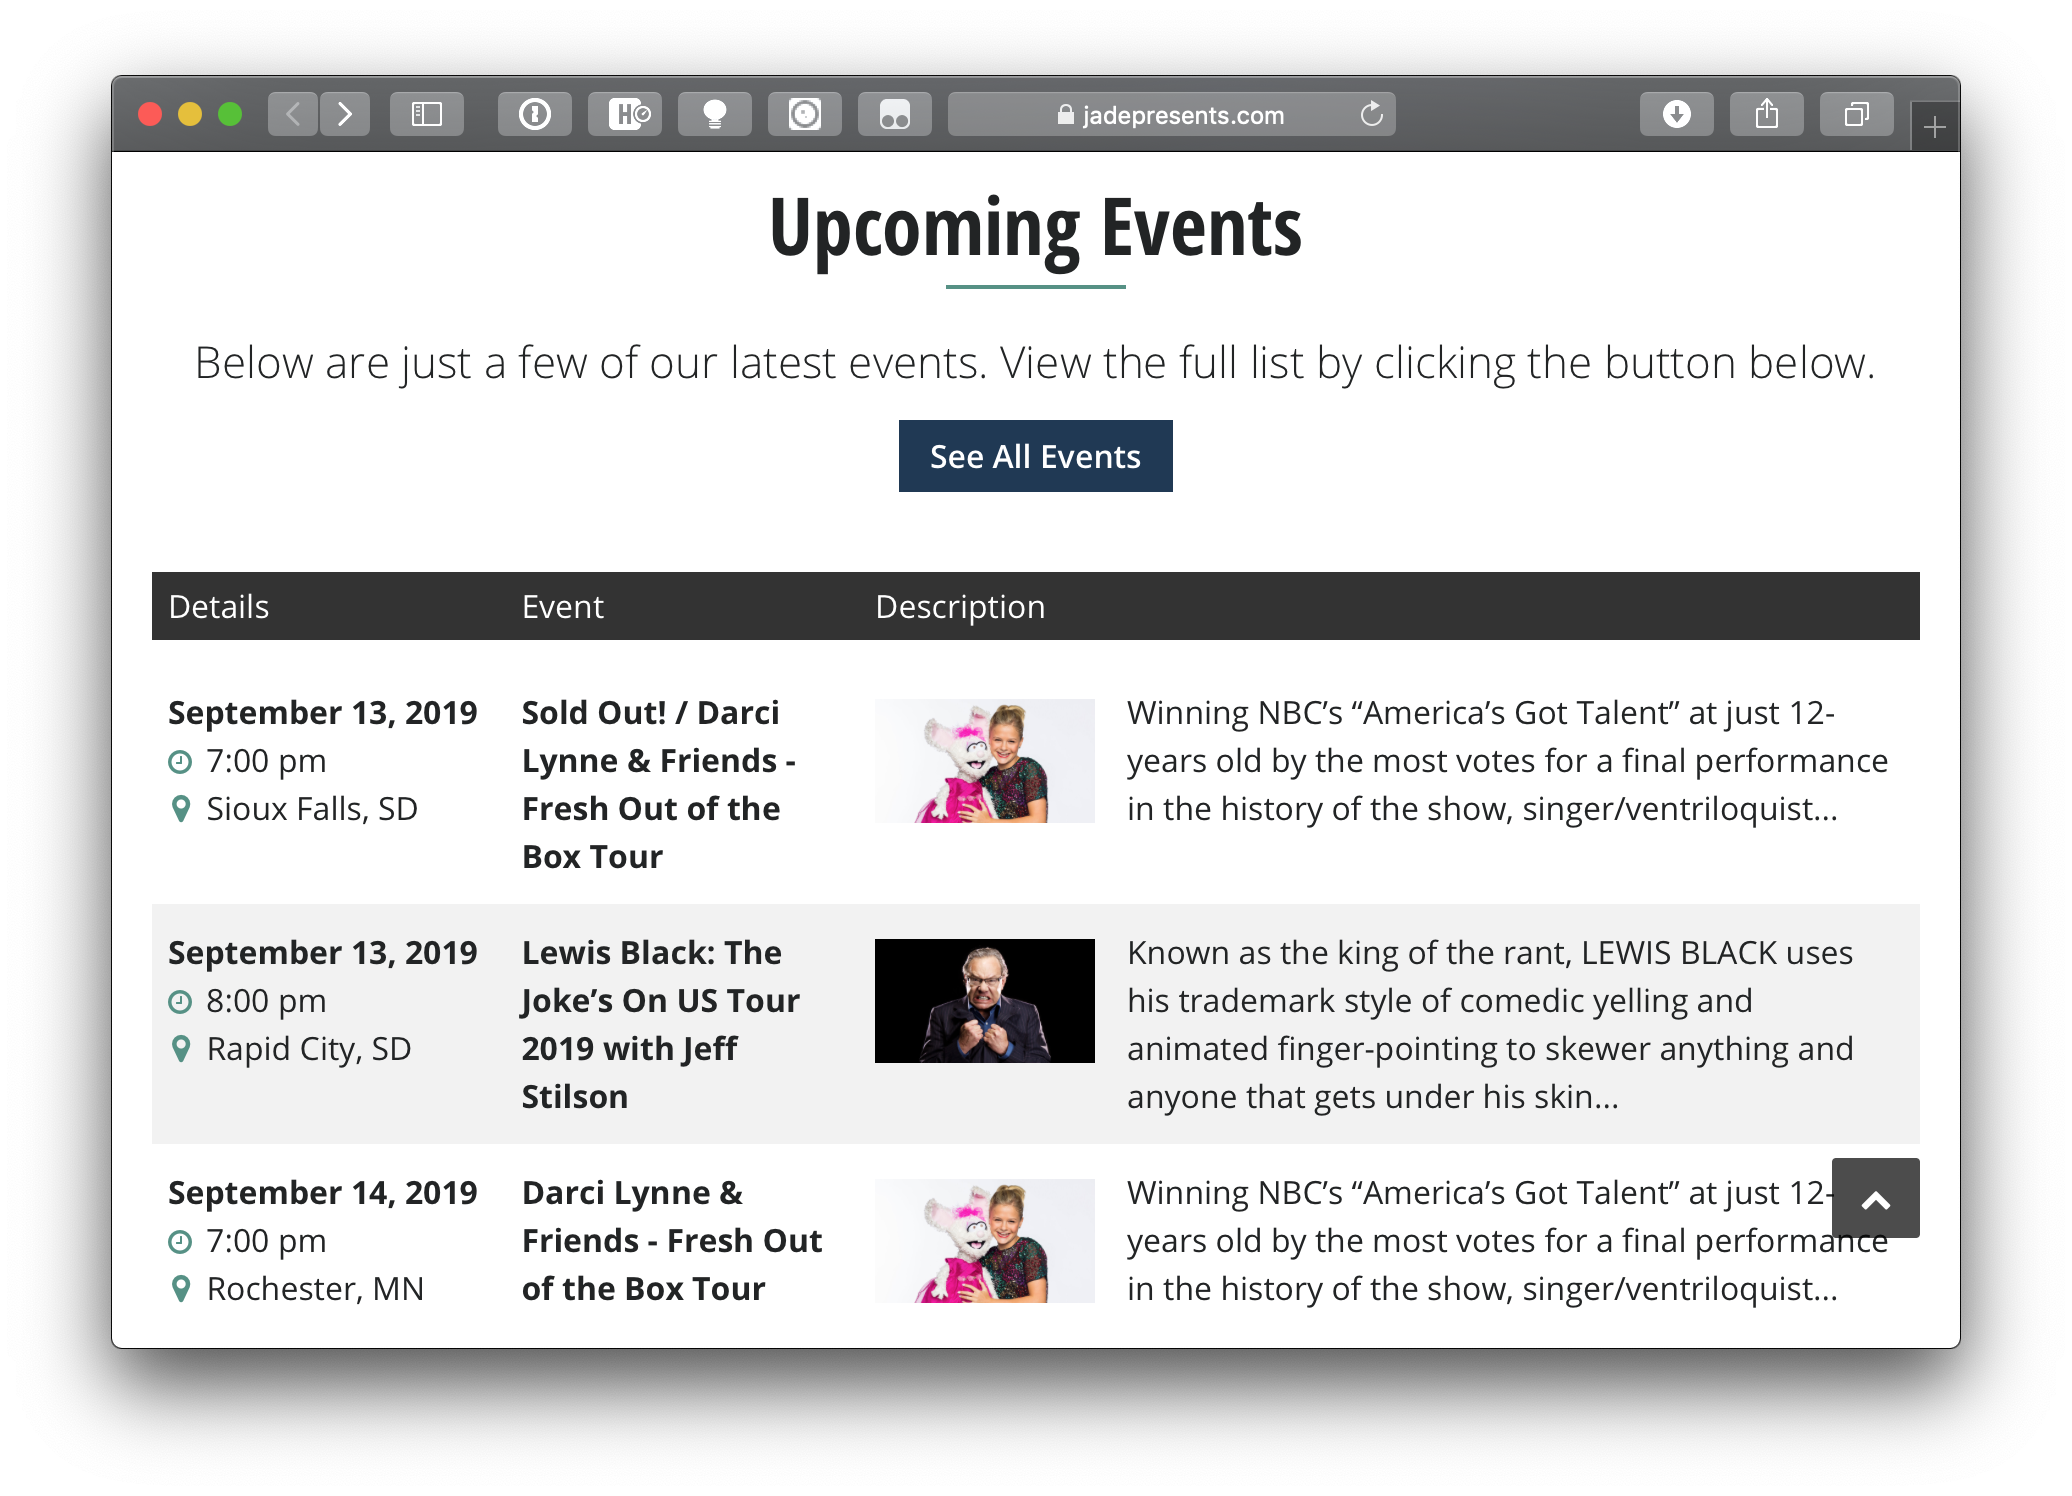 A list of three upcoming events in a custom table format that shows event details, a featured image and an event description for each event.